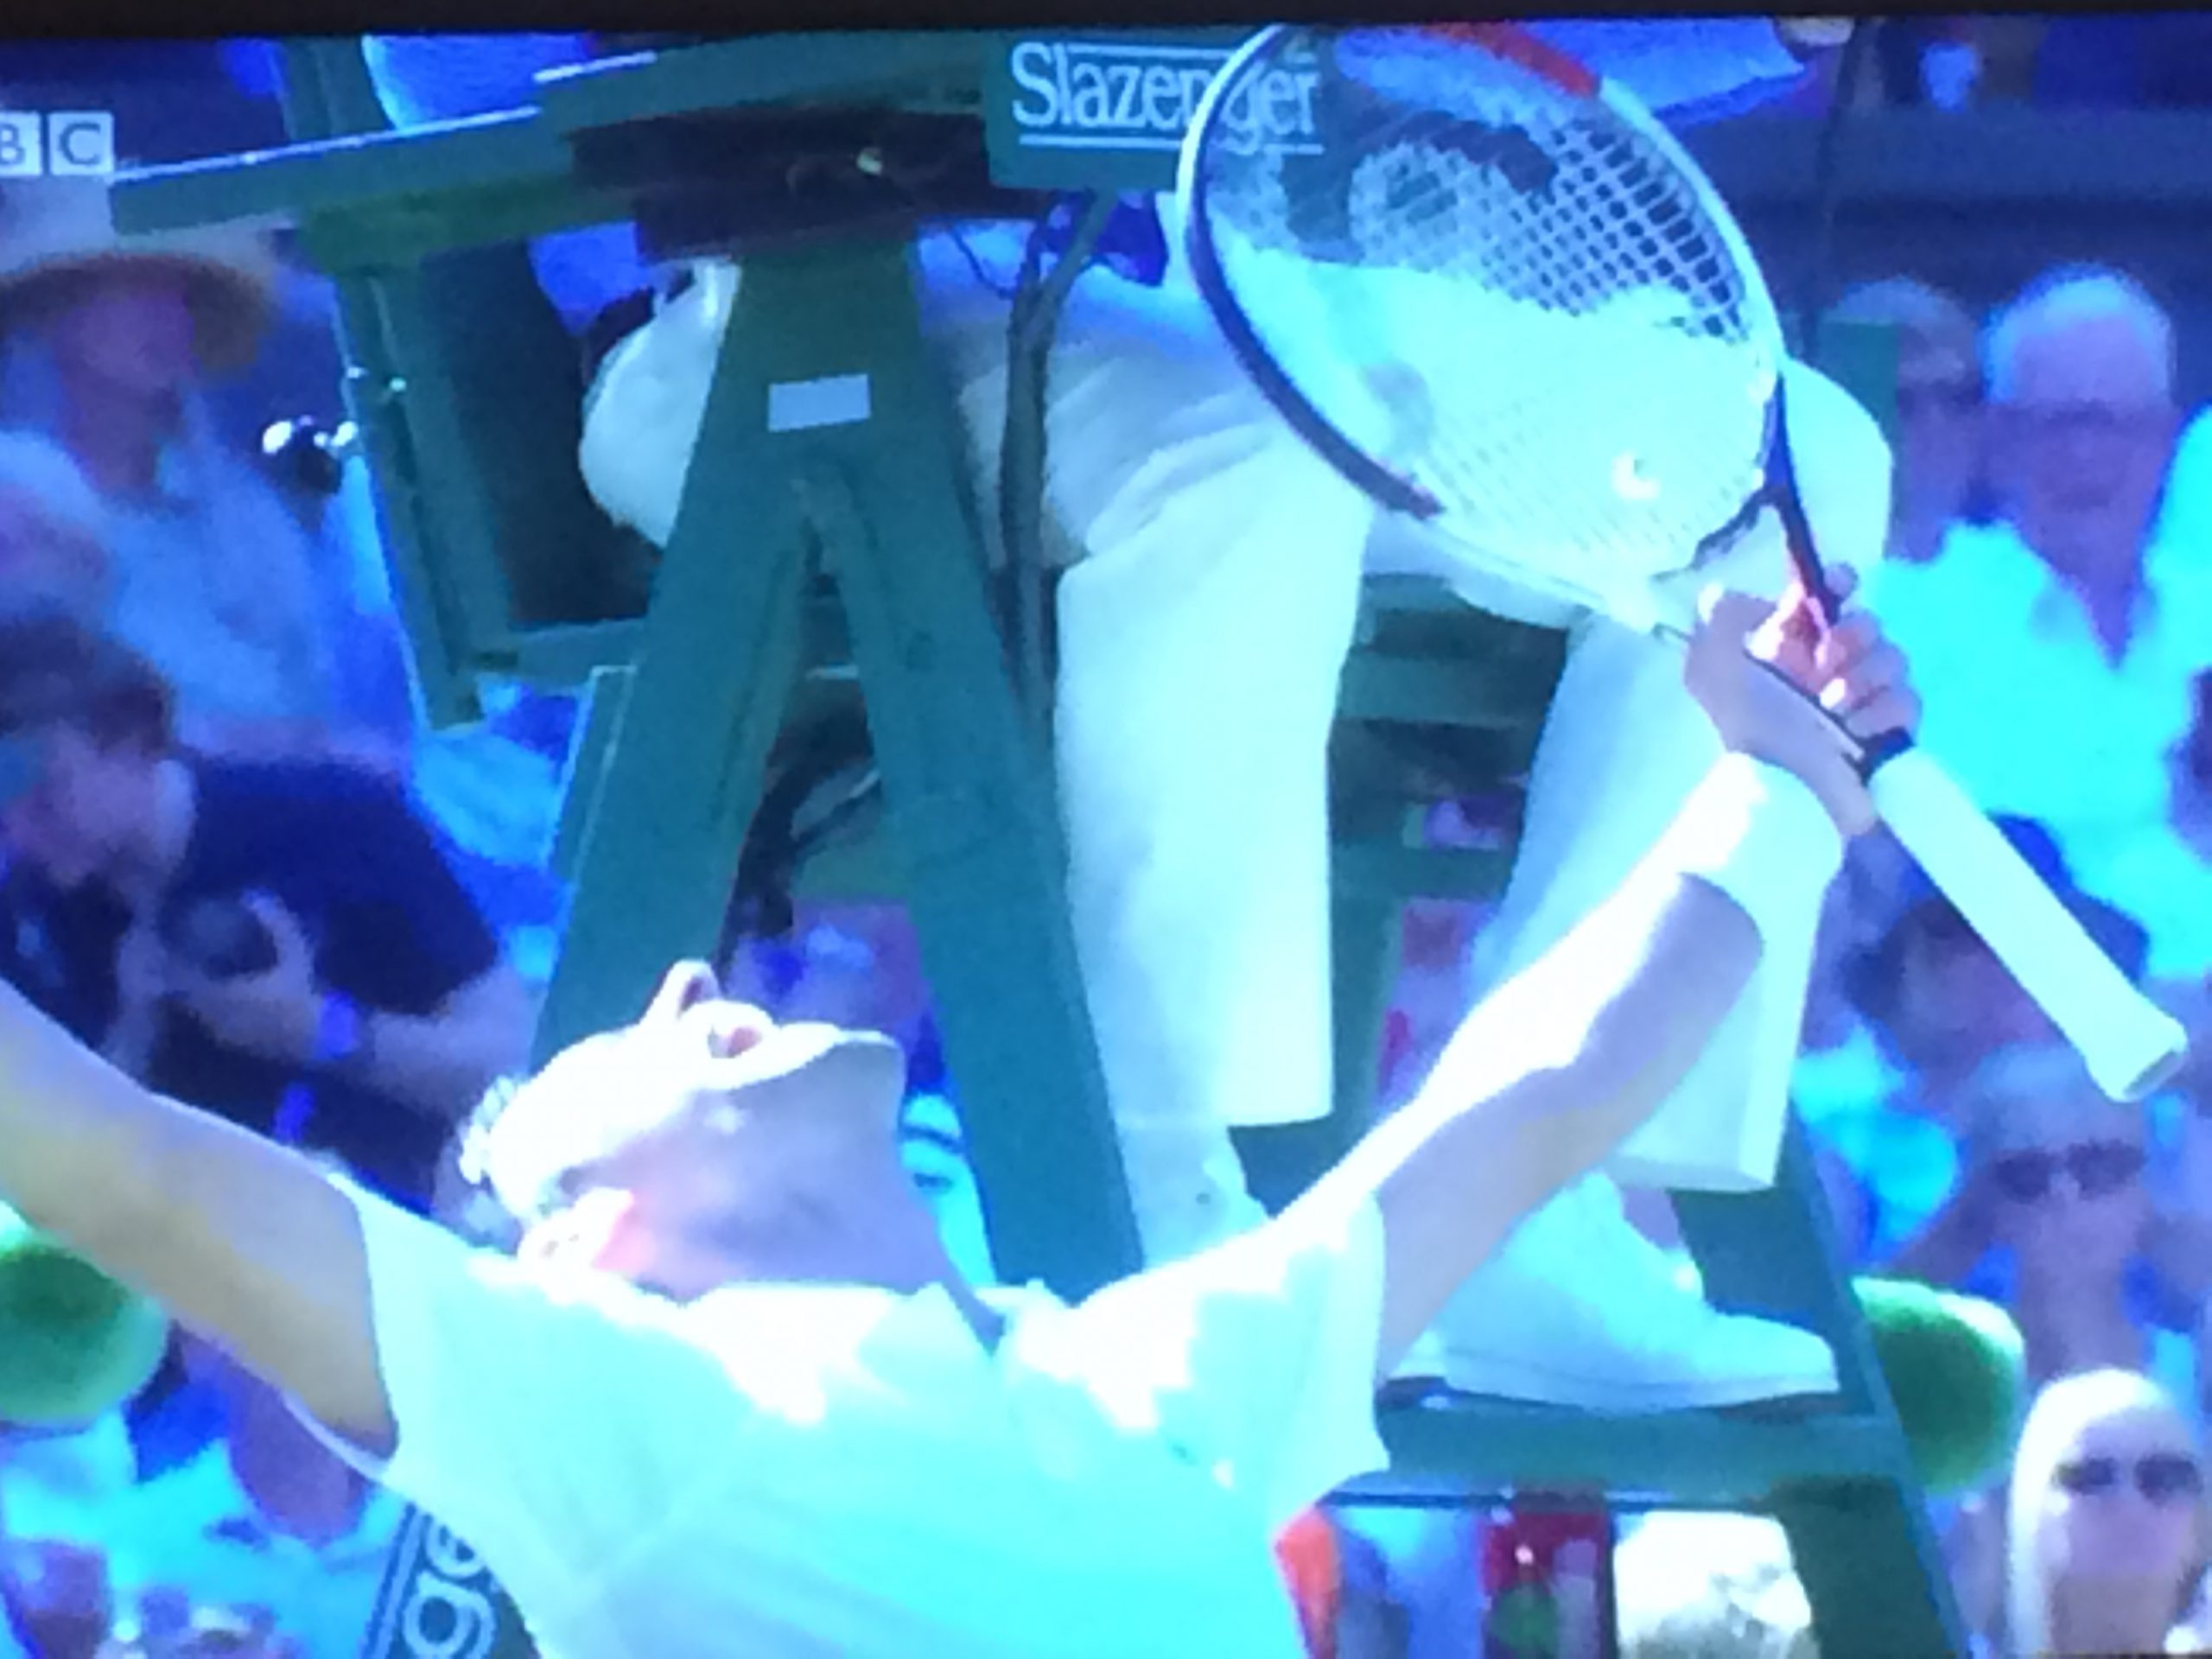 Djokovic winning the men's singles at Wimbledon 2018